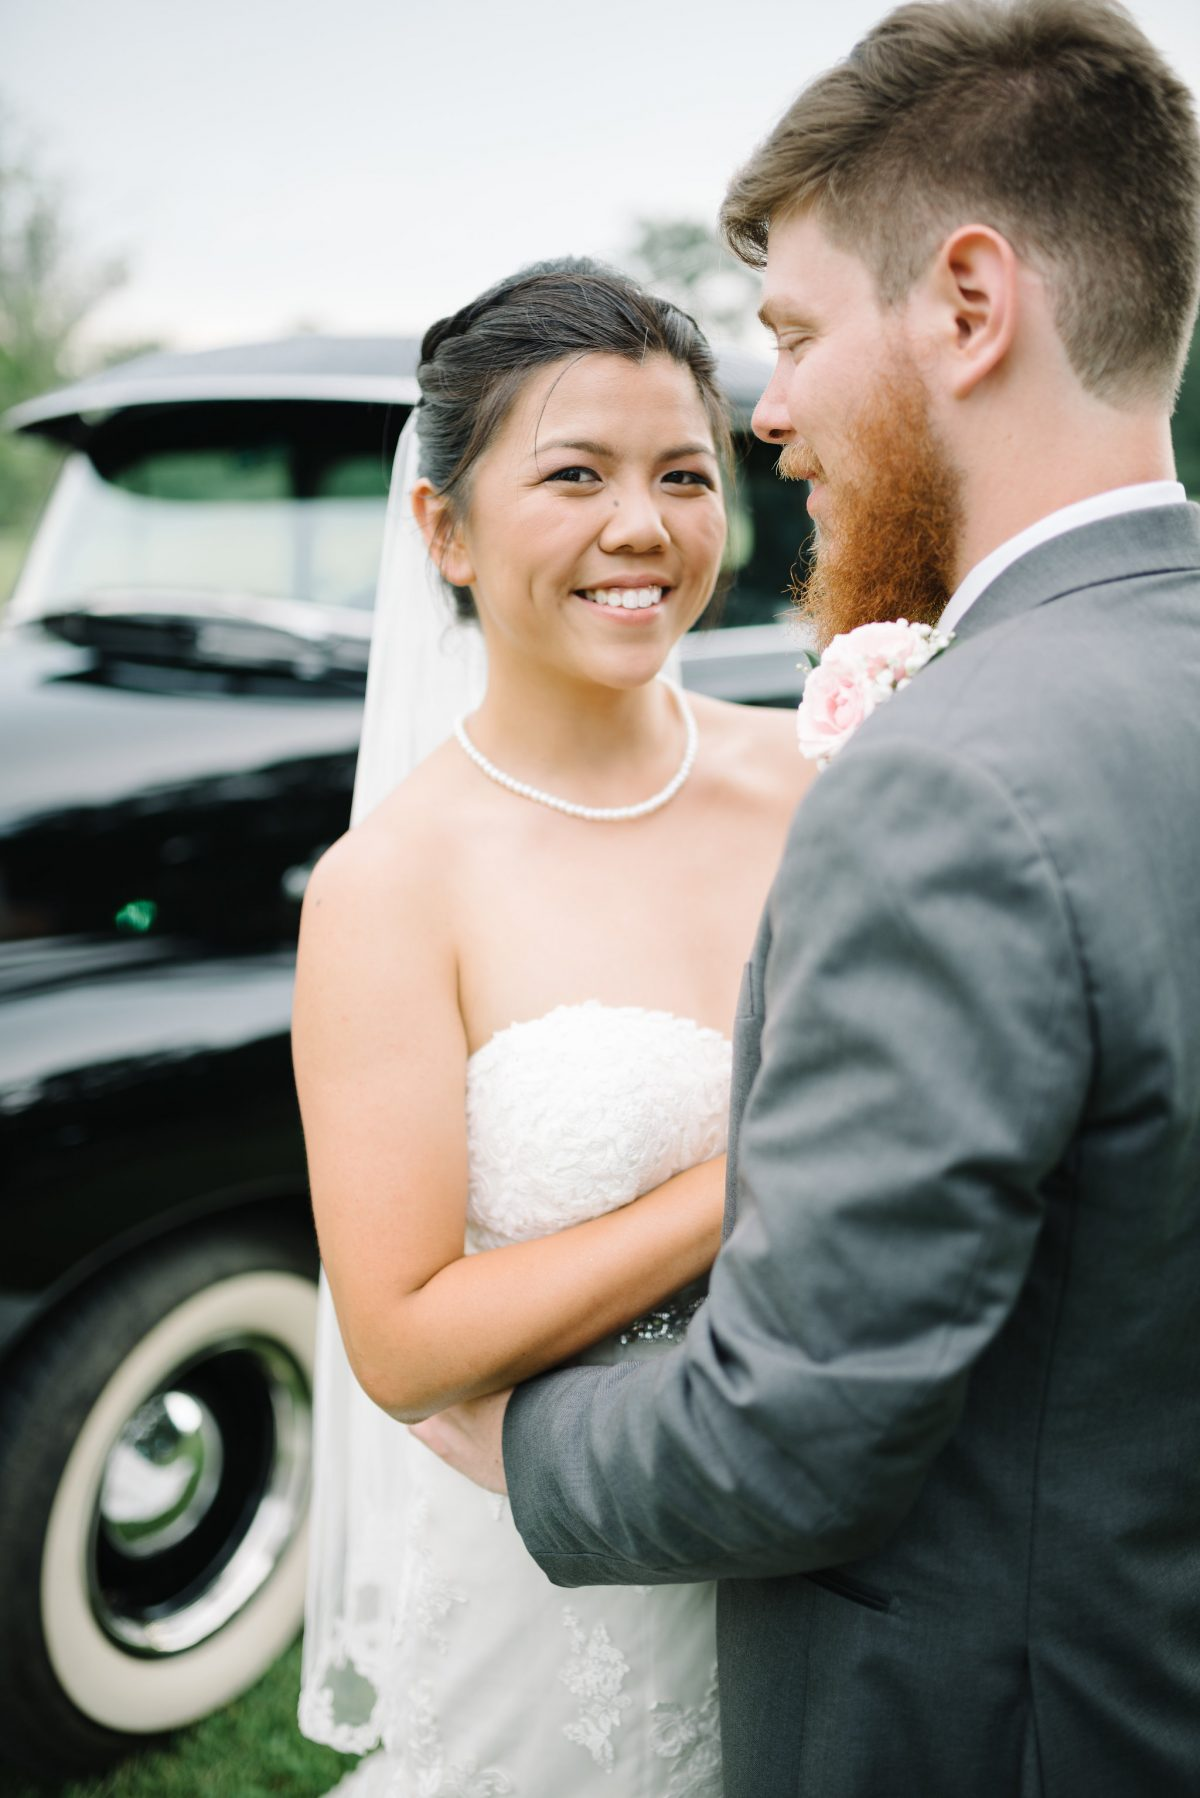 Heather and Ben | Rustic, Farmhouse Wedding at Town Hall Texas in The Woodlands Wedding